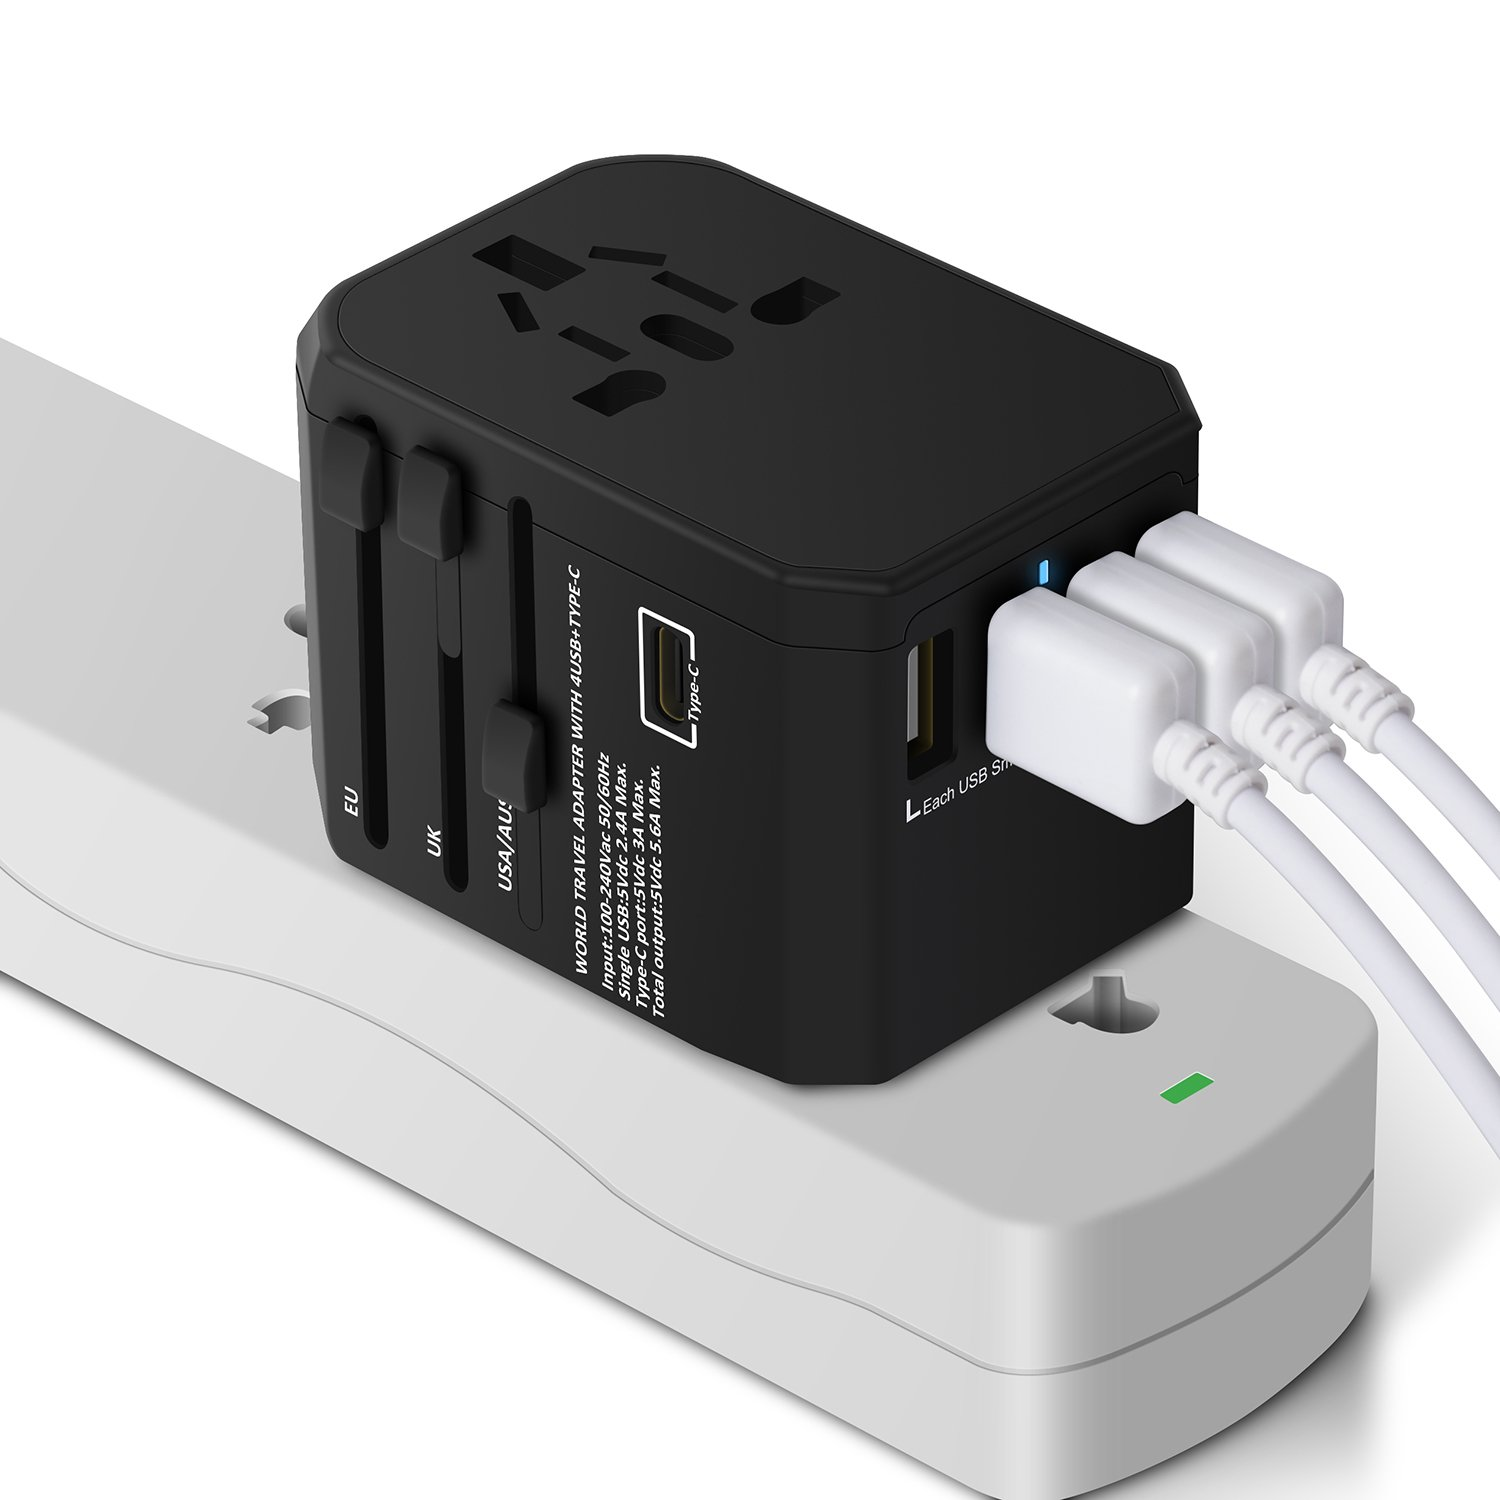 International Travel Adapter Charger, All in One Travel Power Adapter Power Plug Converter with 4 USB Charging Ports and 1 Type C Adapter for USA EU UK AUS Cell Phone Tablet Laptop (Black) (Black)